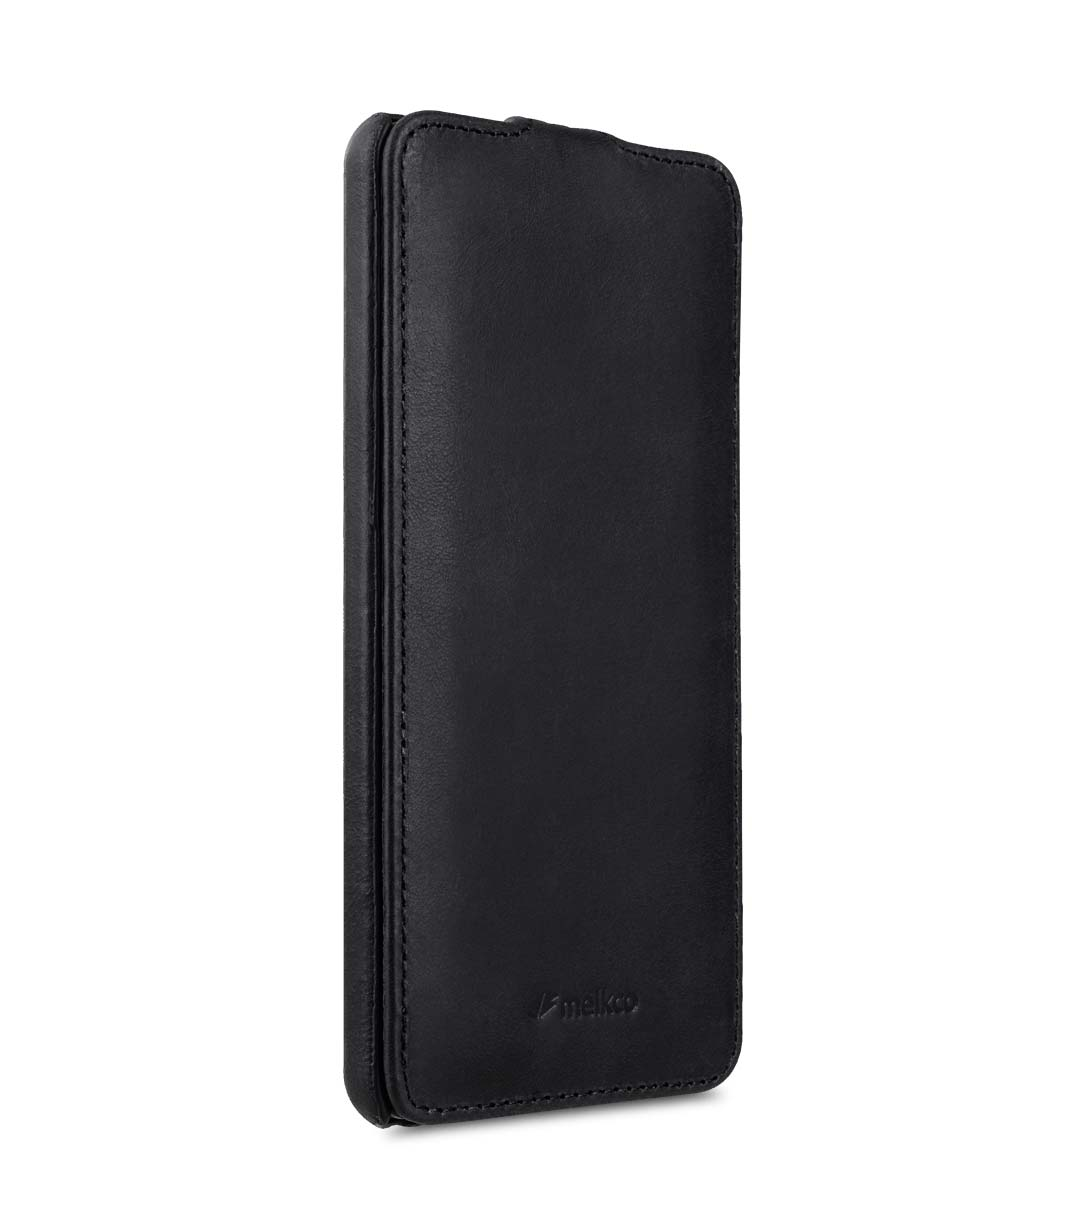 Premium Leather Case for Nokia 6 - Jacka Type (Vintage Black)